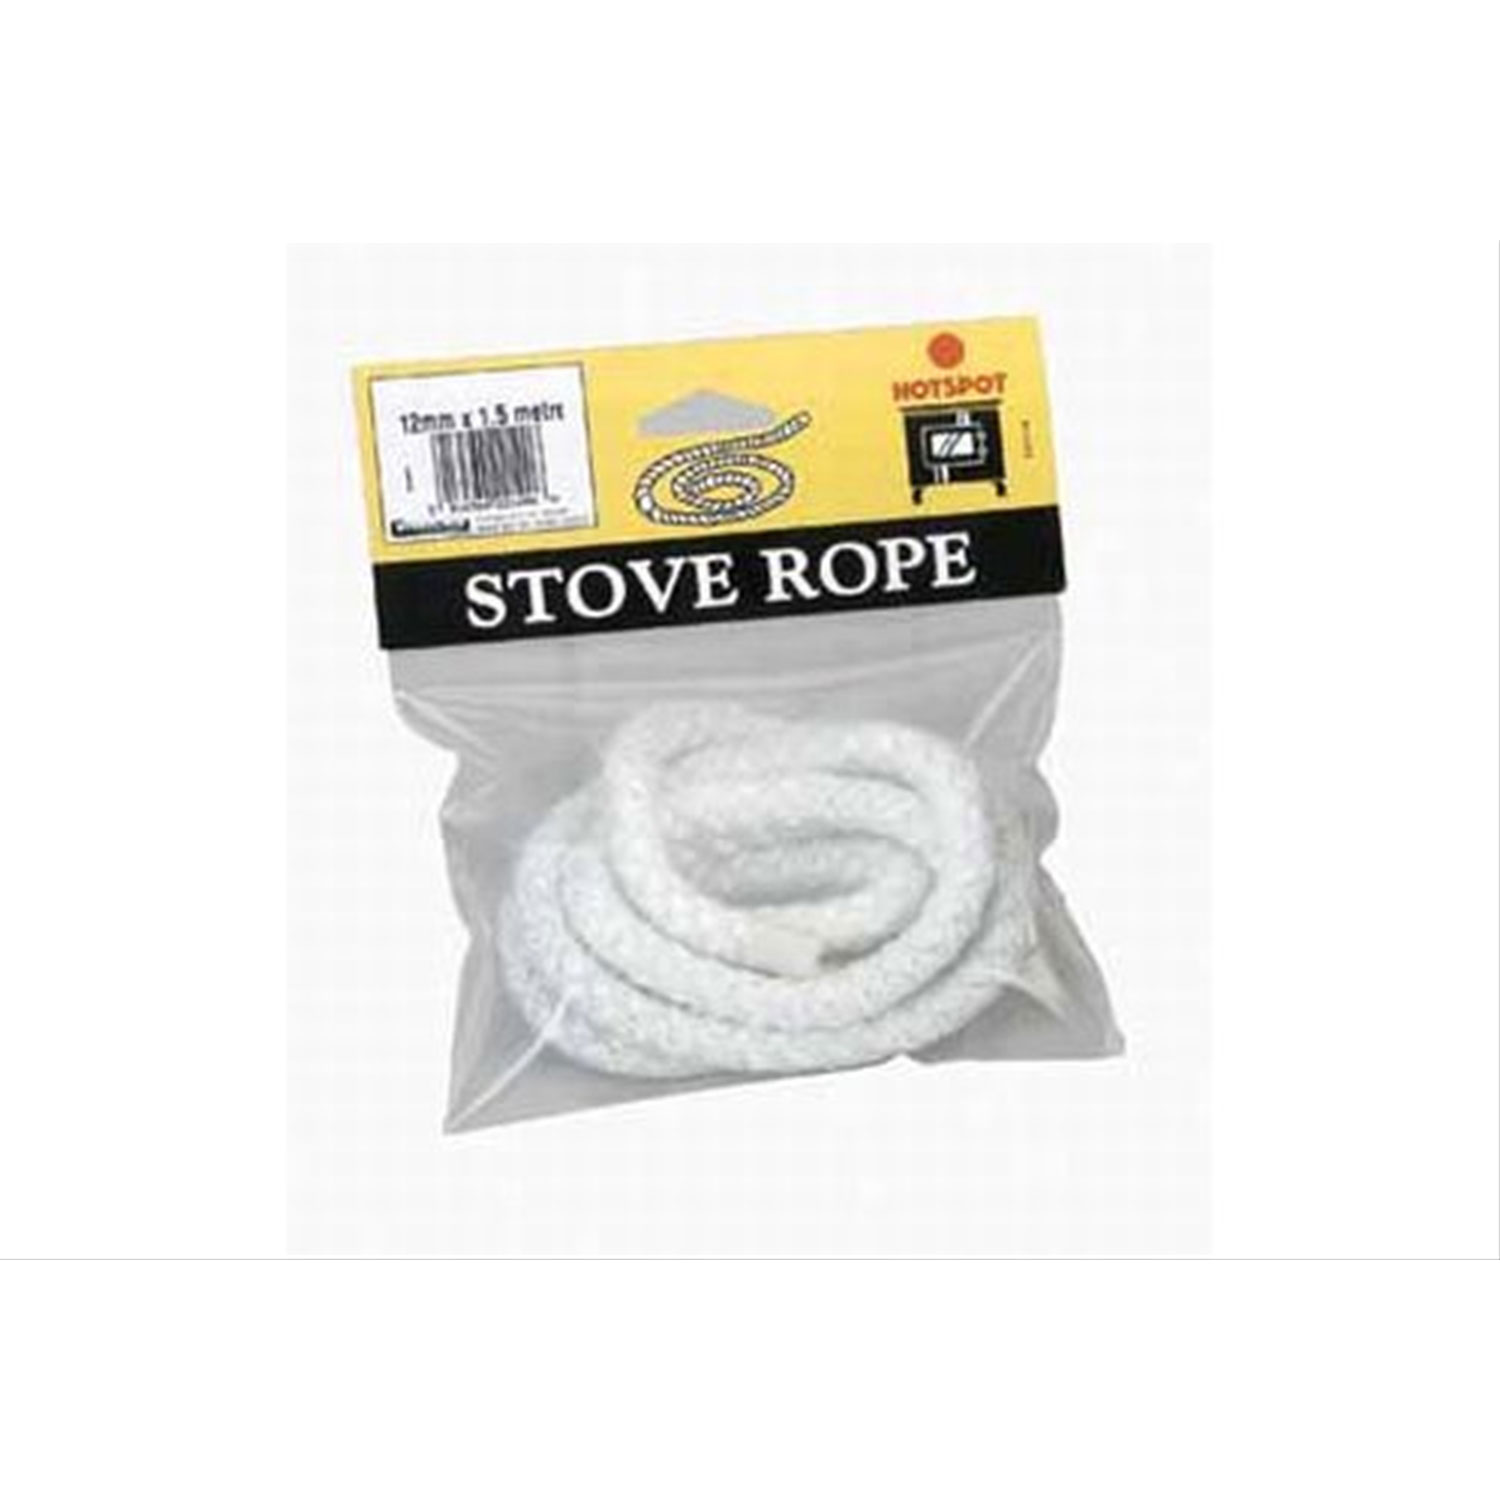 Image of Hotspot Stove Rope 9mm